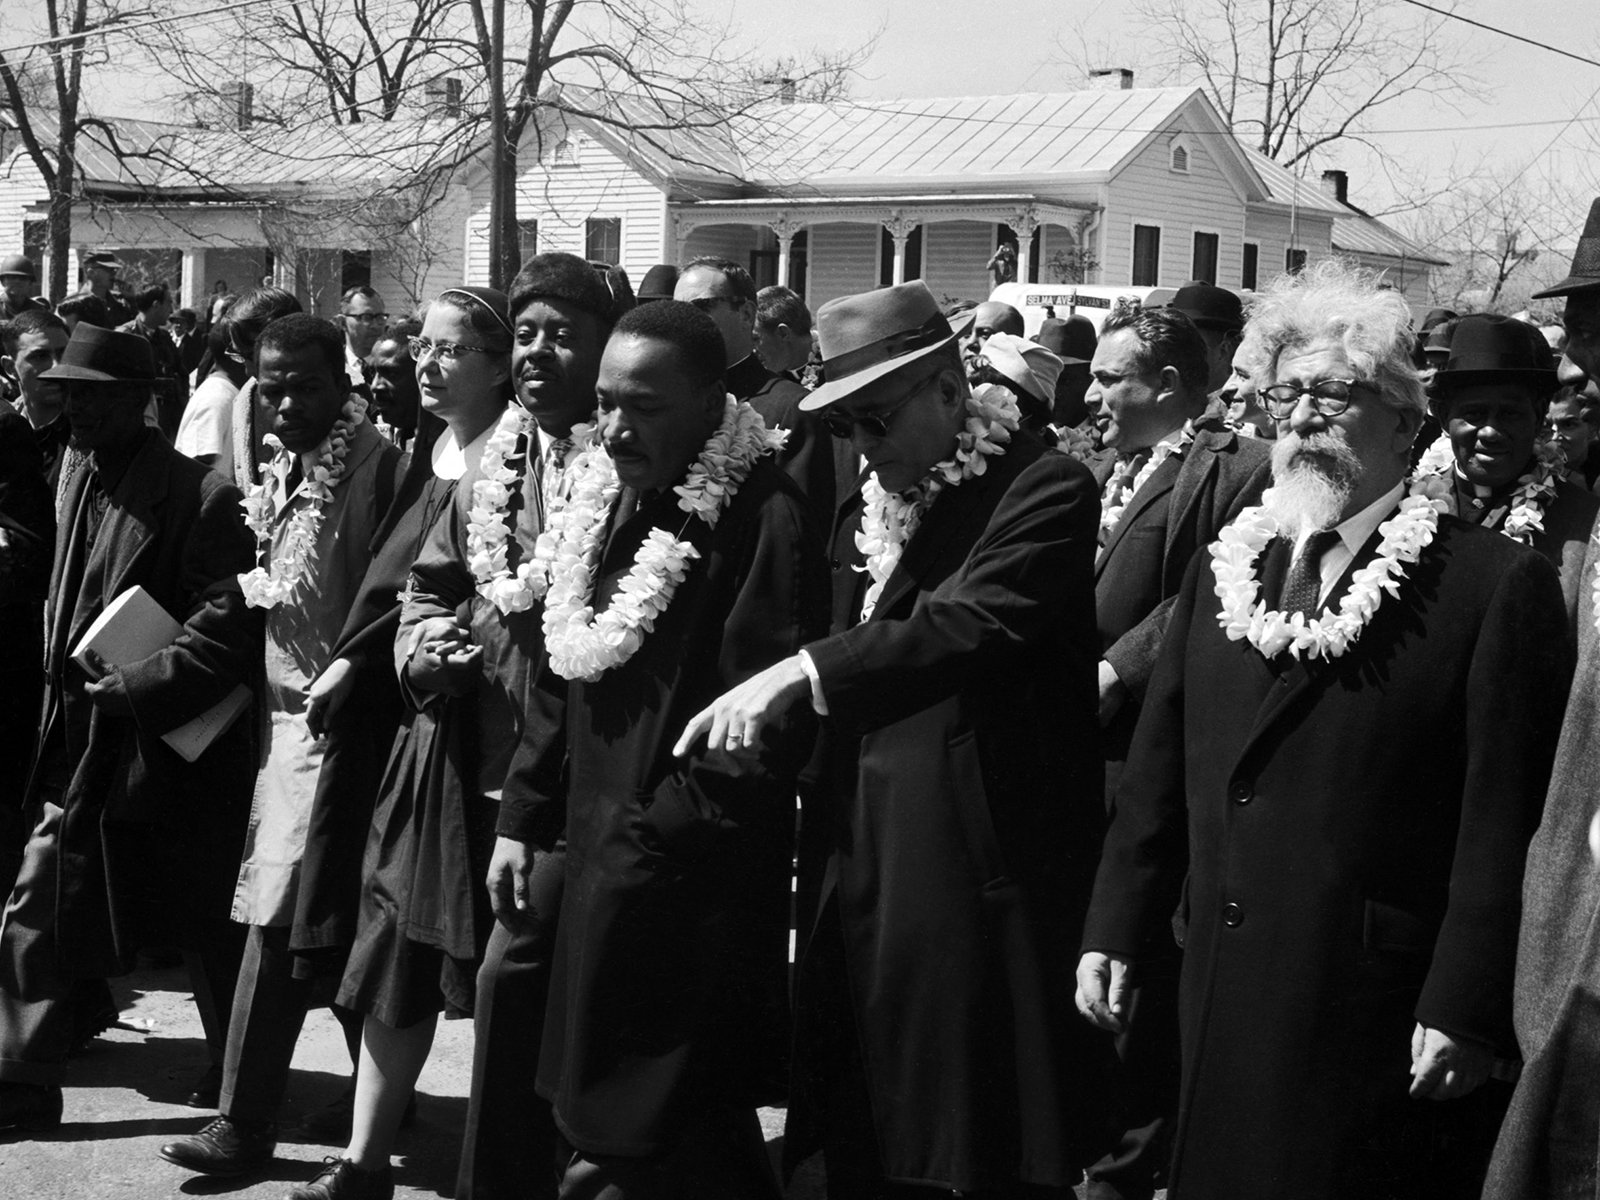 Abraham Joshua Heschel, far right, during the Selma March in 1965. Photo © James Karales